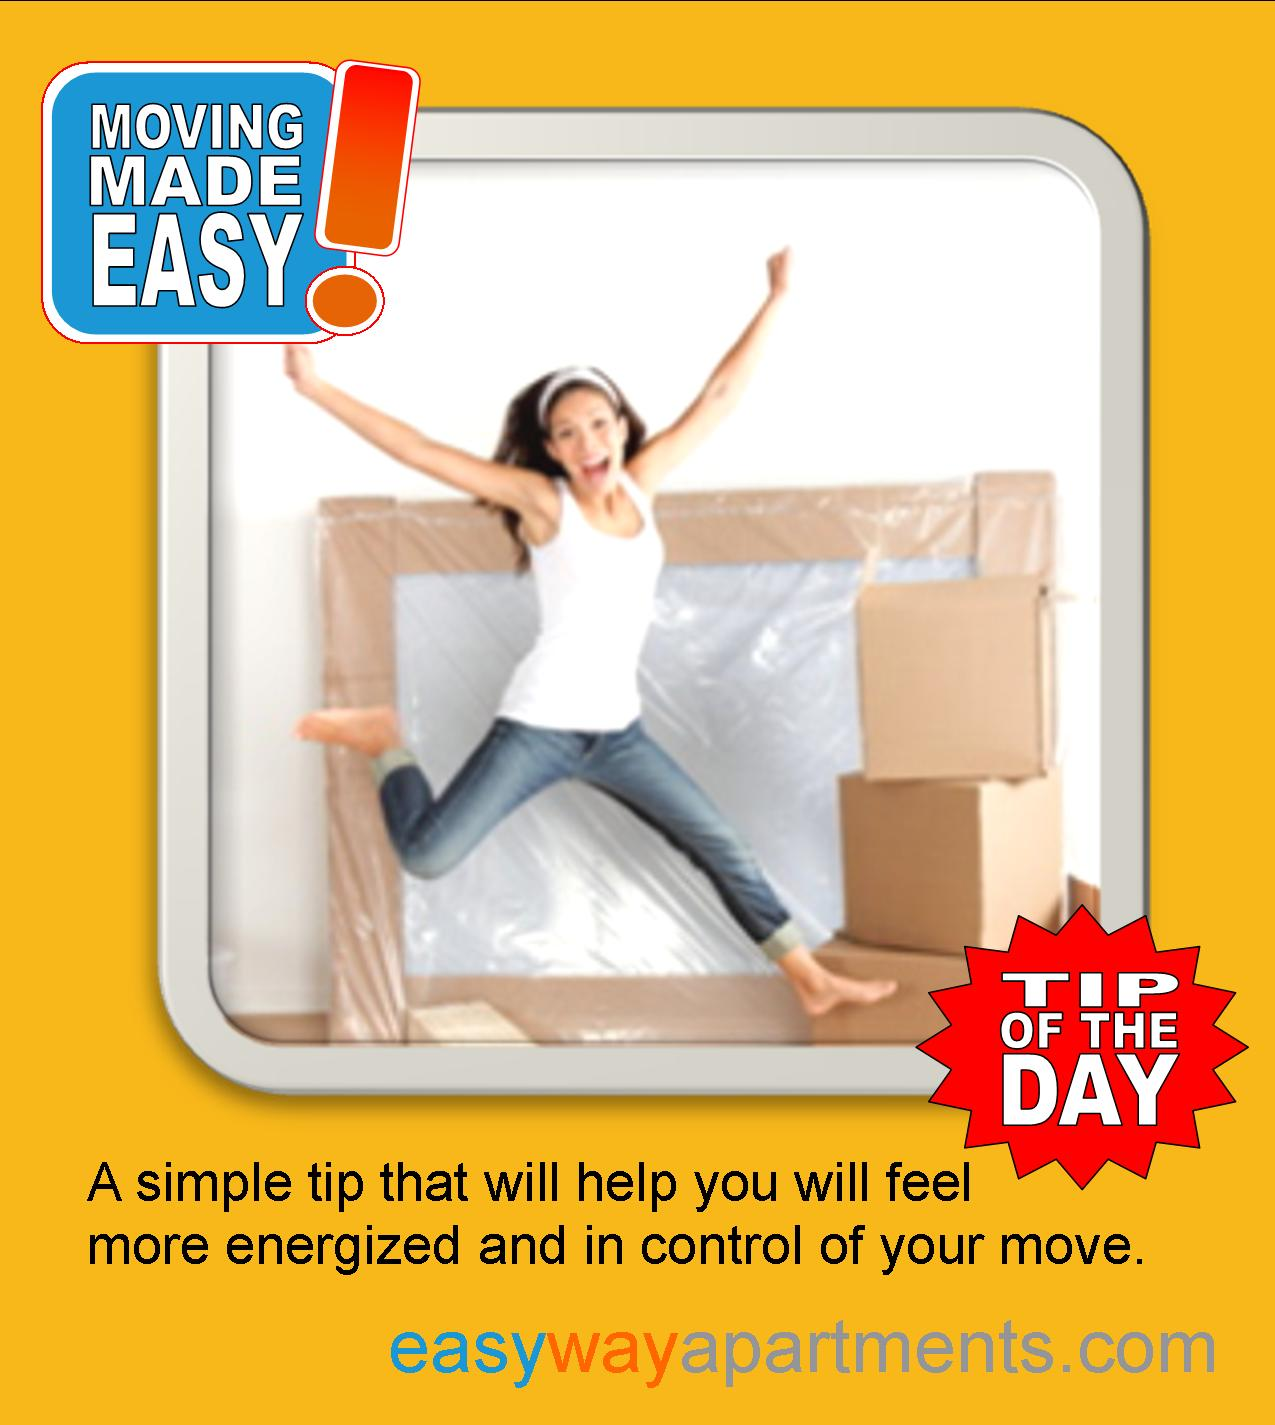 #Moving Made Easy| How to stay in controll and #energized when you move